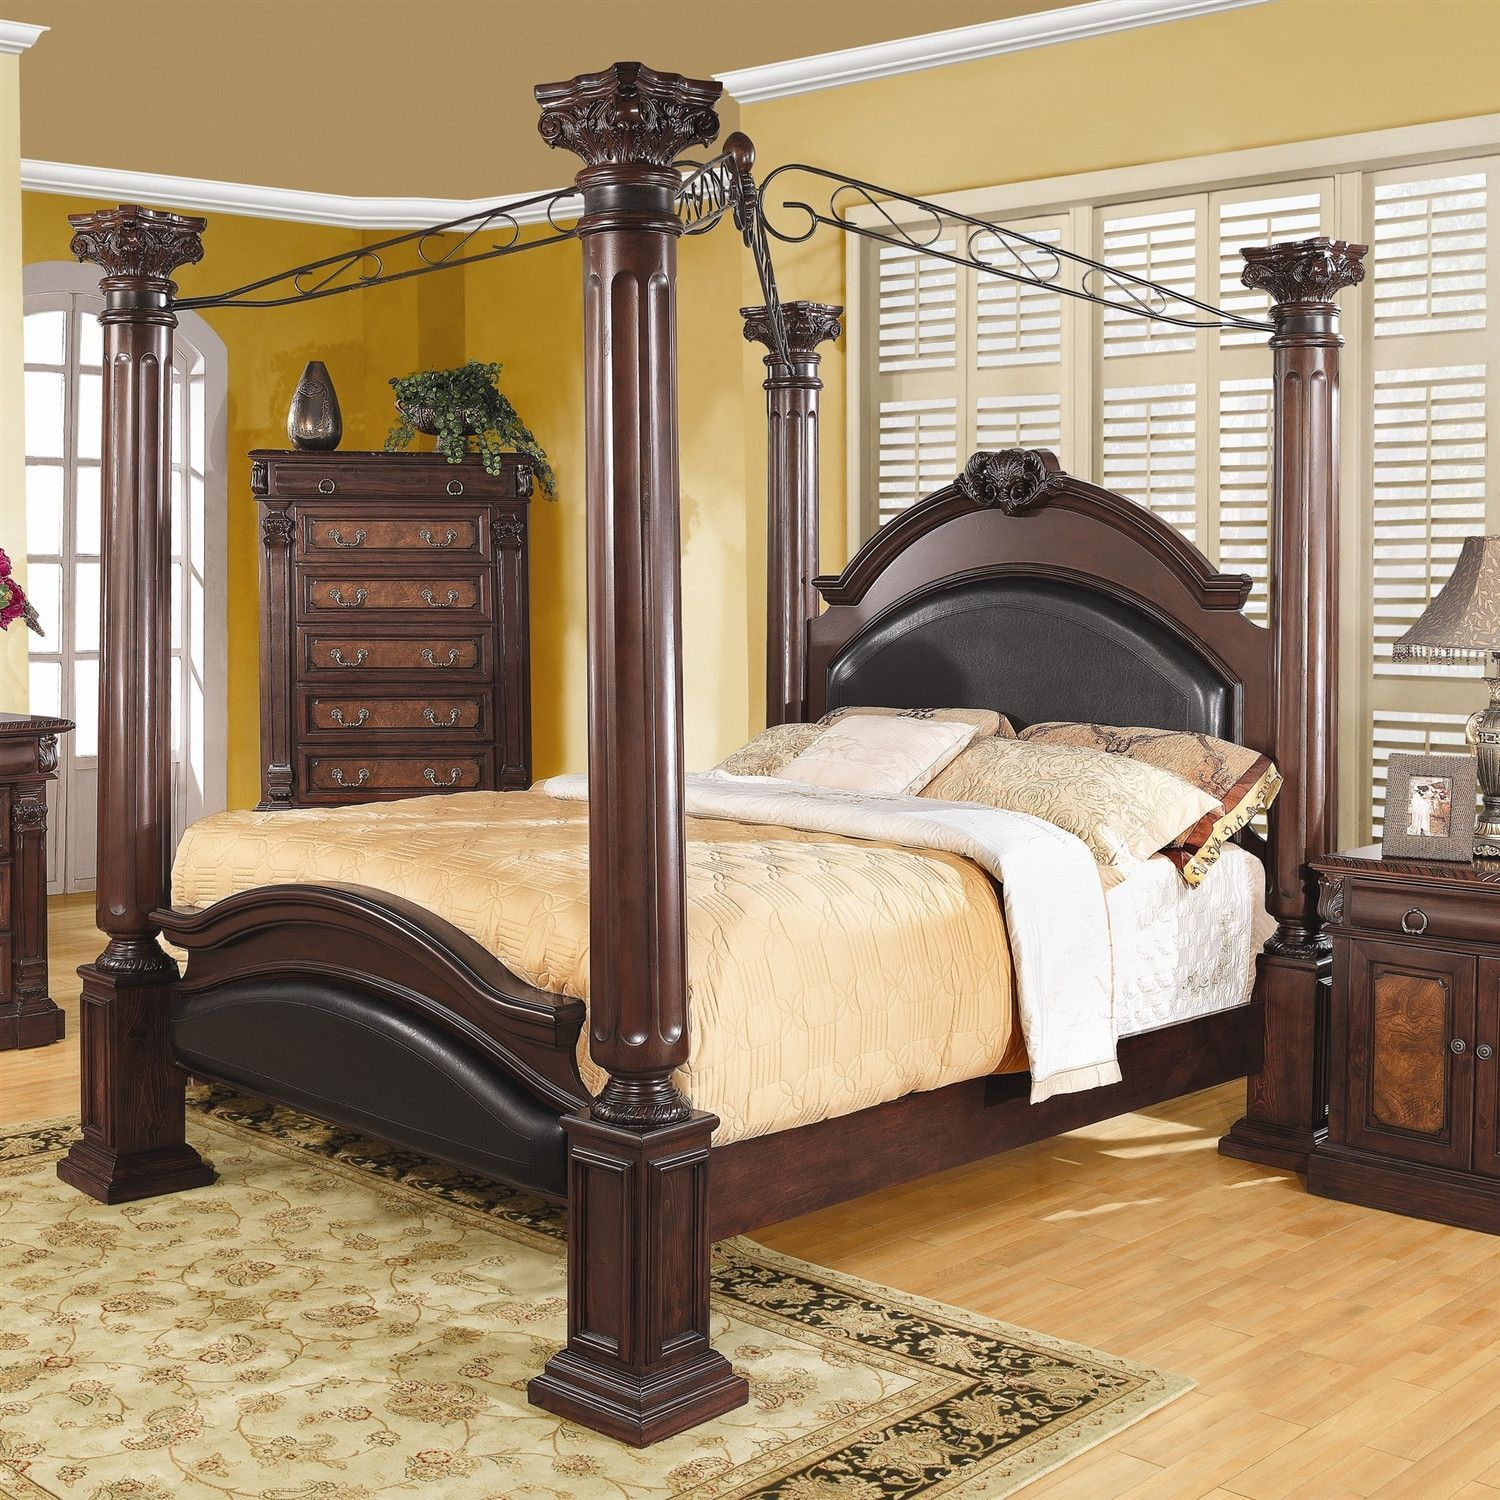 Queen Size Canopy Bed 4 Poster Bed With Large Posts Canopy